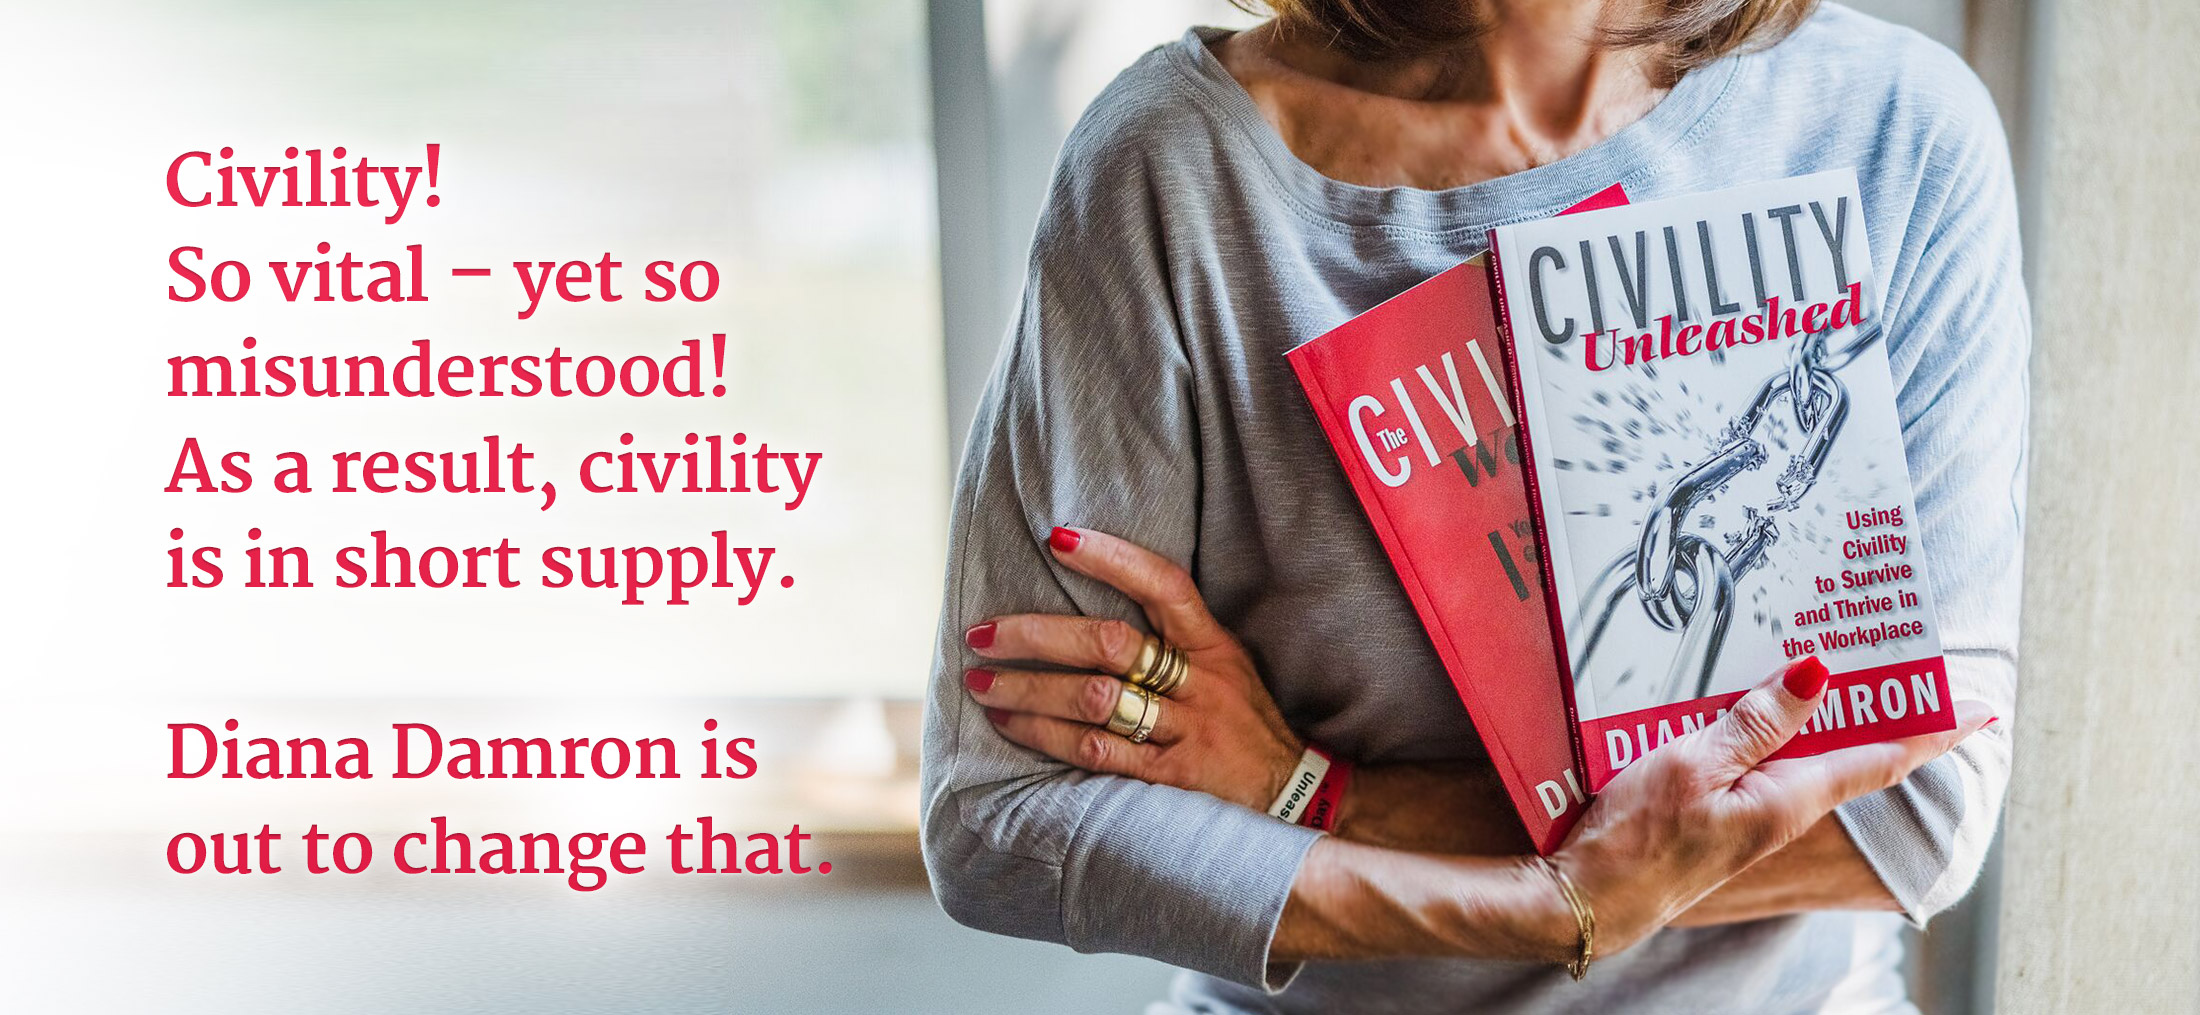 Civility! So vital – yet so misunderstood! As a result, civility is in short supply. Diana Damron is out to change that.